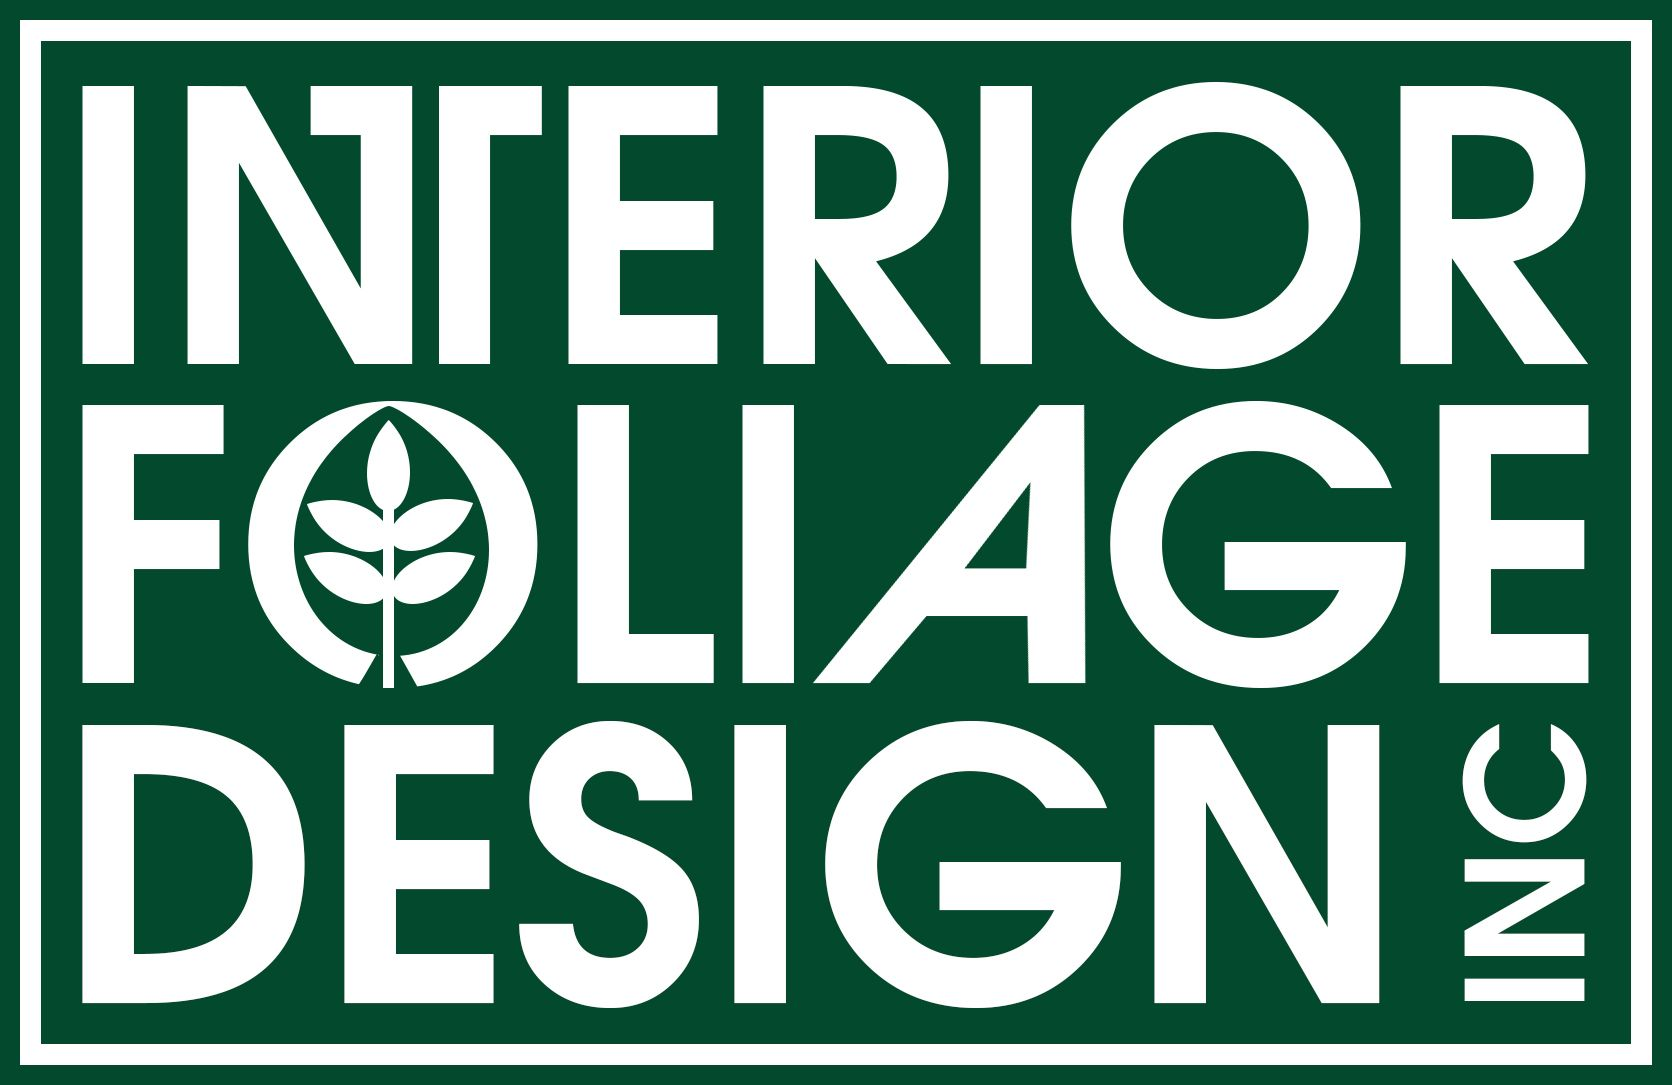 Interior Foliage Design